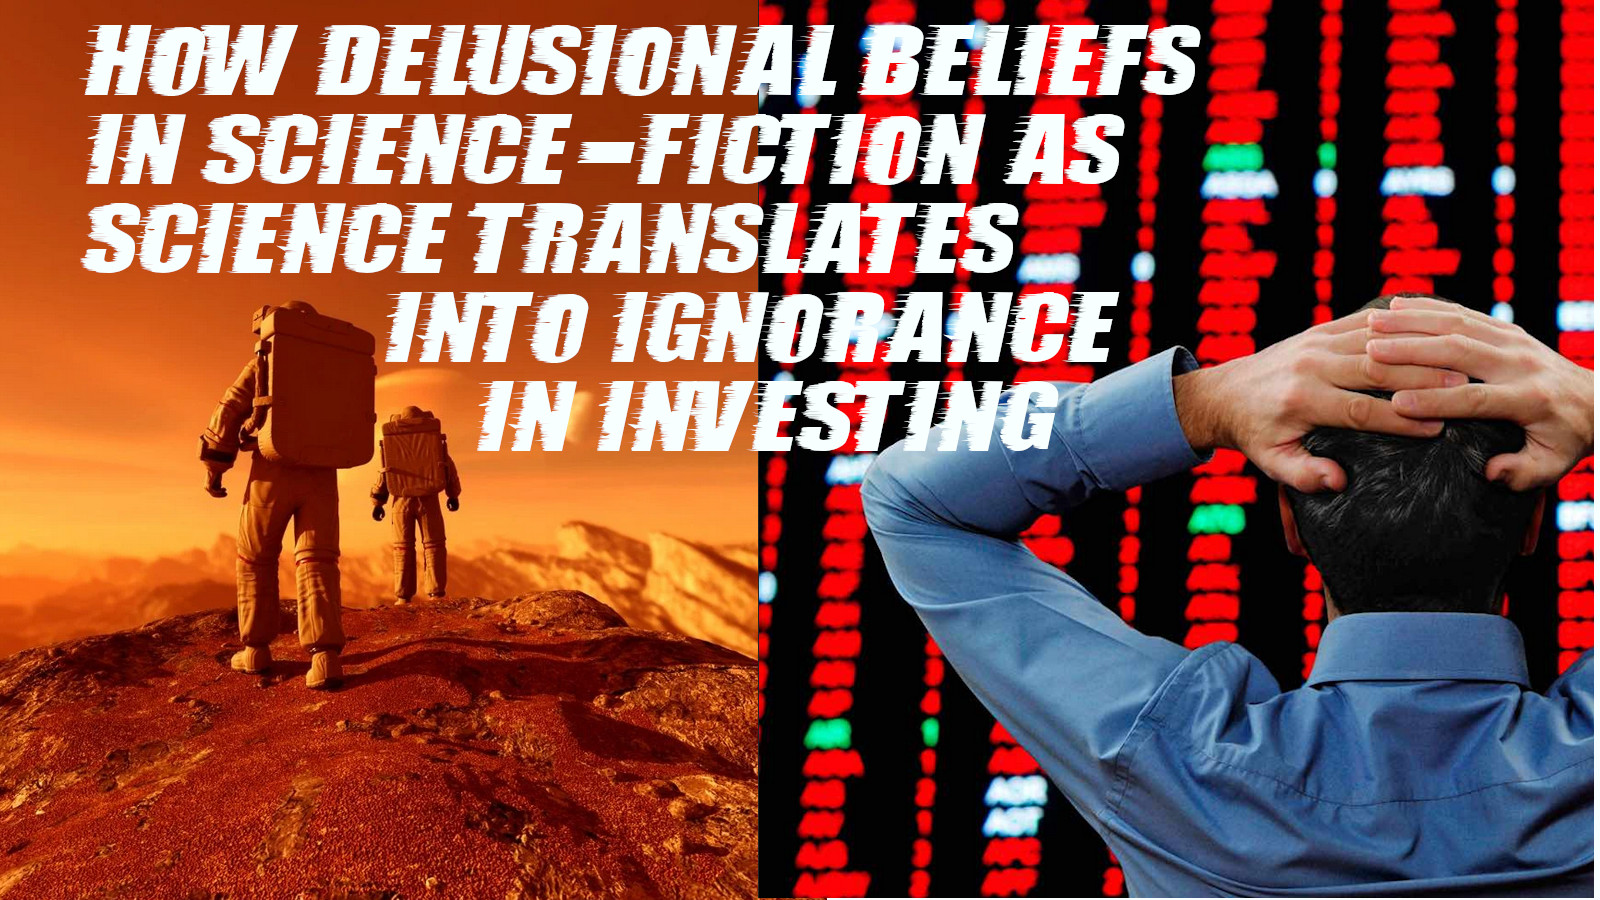 delusional beliefs in science fiction as science translates into investment ignorance